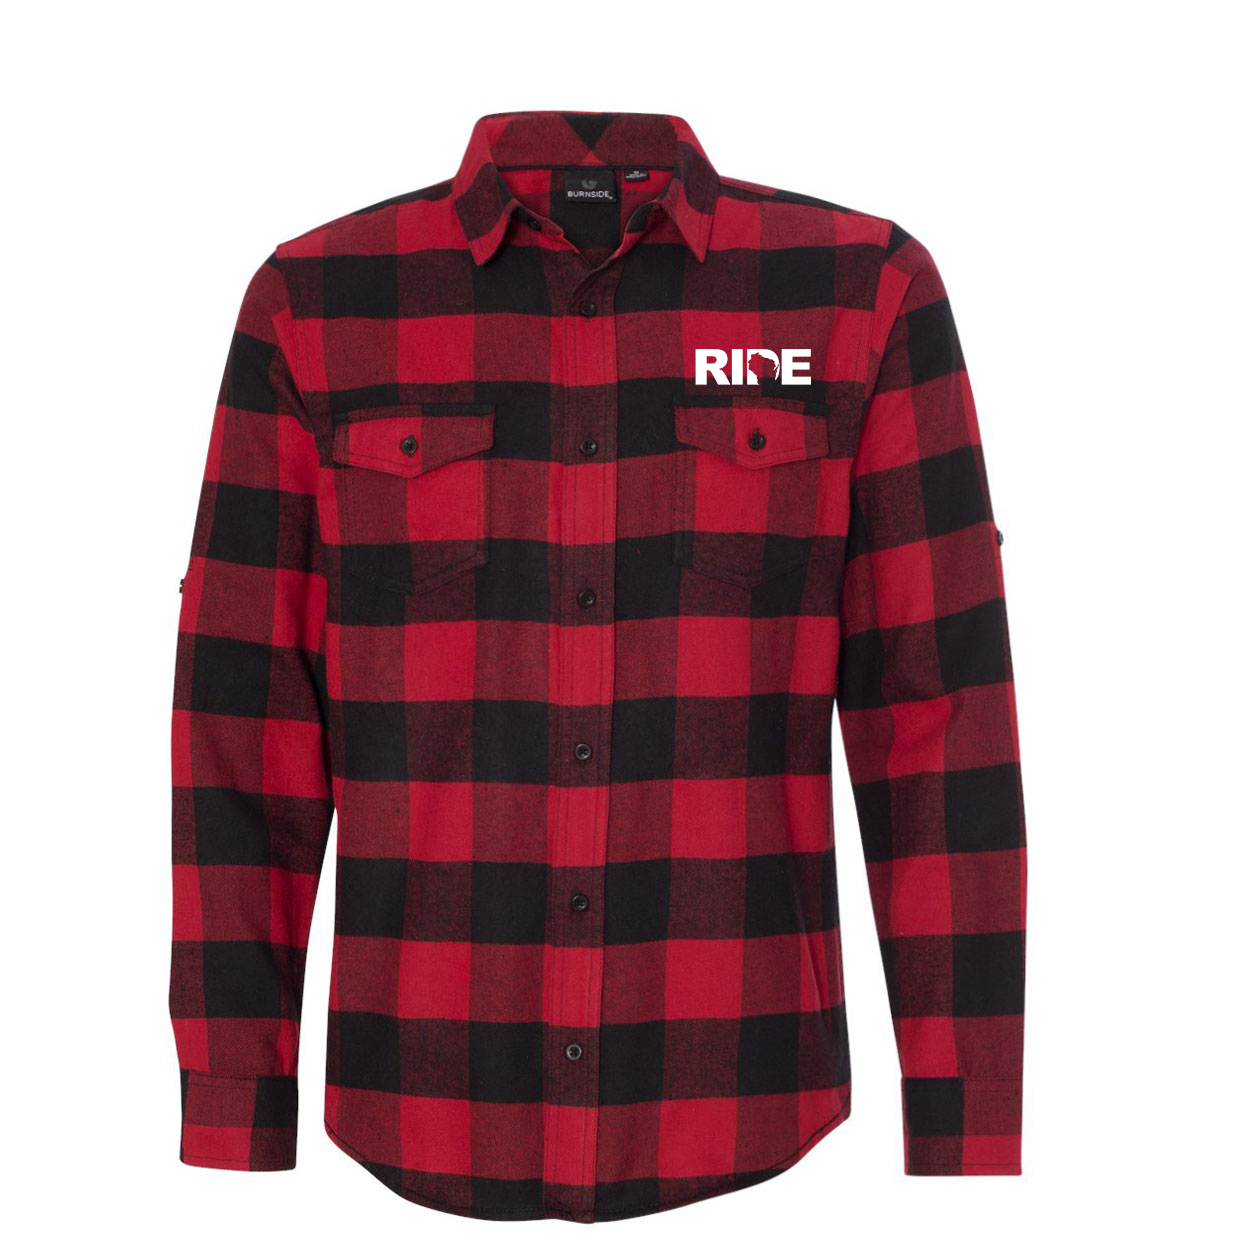 Ride Wisconsin Classic Unisex Long Sleeve Flannel Shirt Red/Black Buffalo (White Logo)